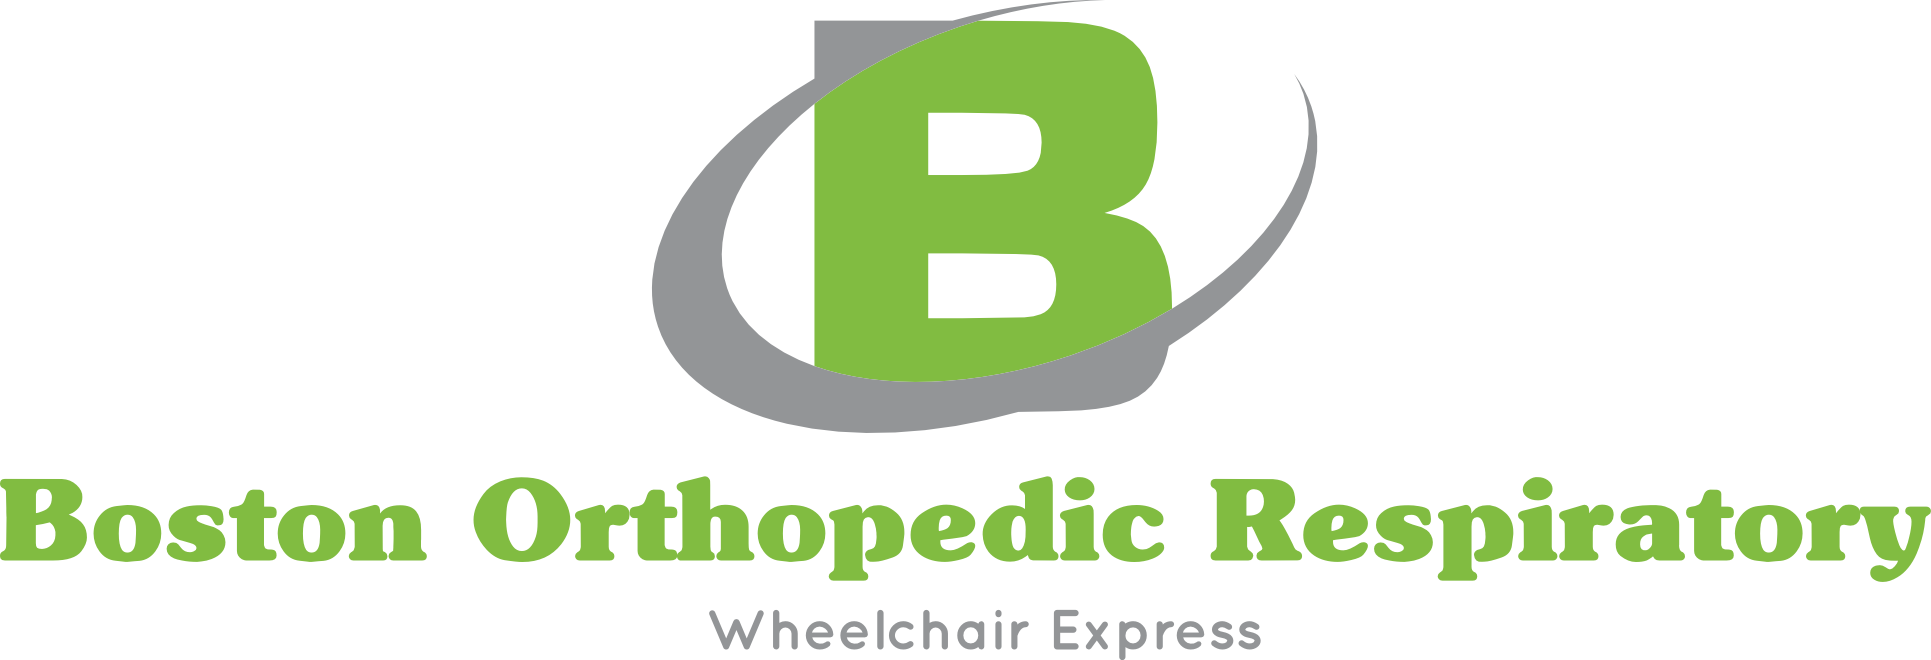 BOSTON ORTHOPEDIC & RESPIRATORY EQUIPMENT, LLC